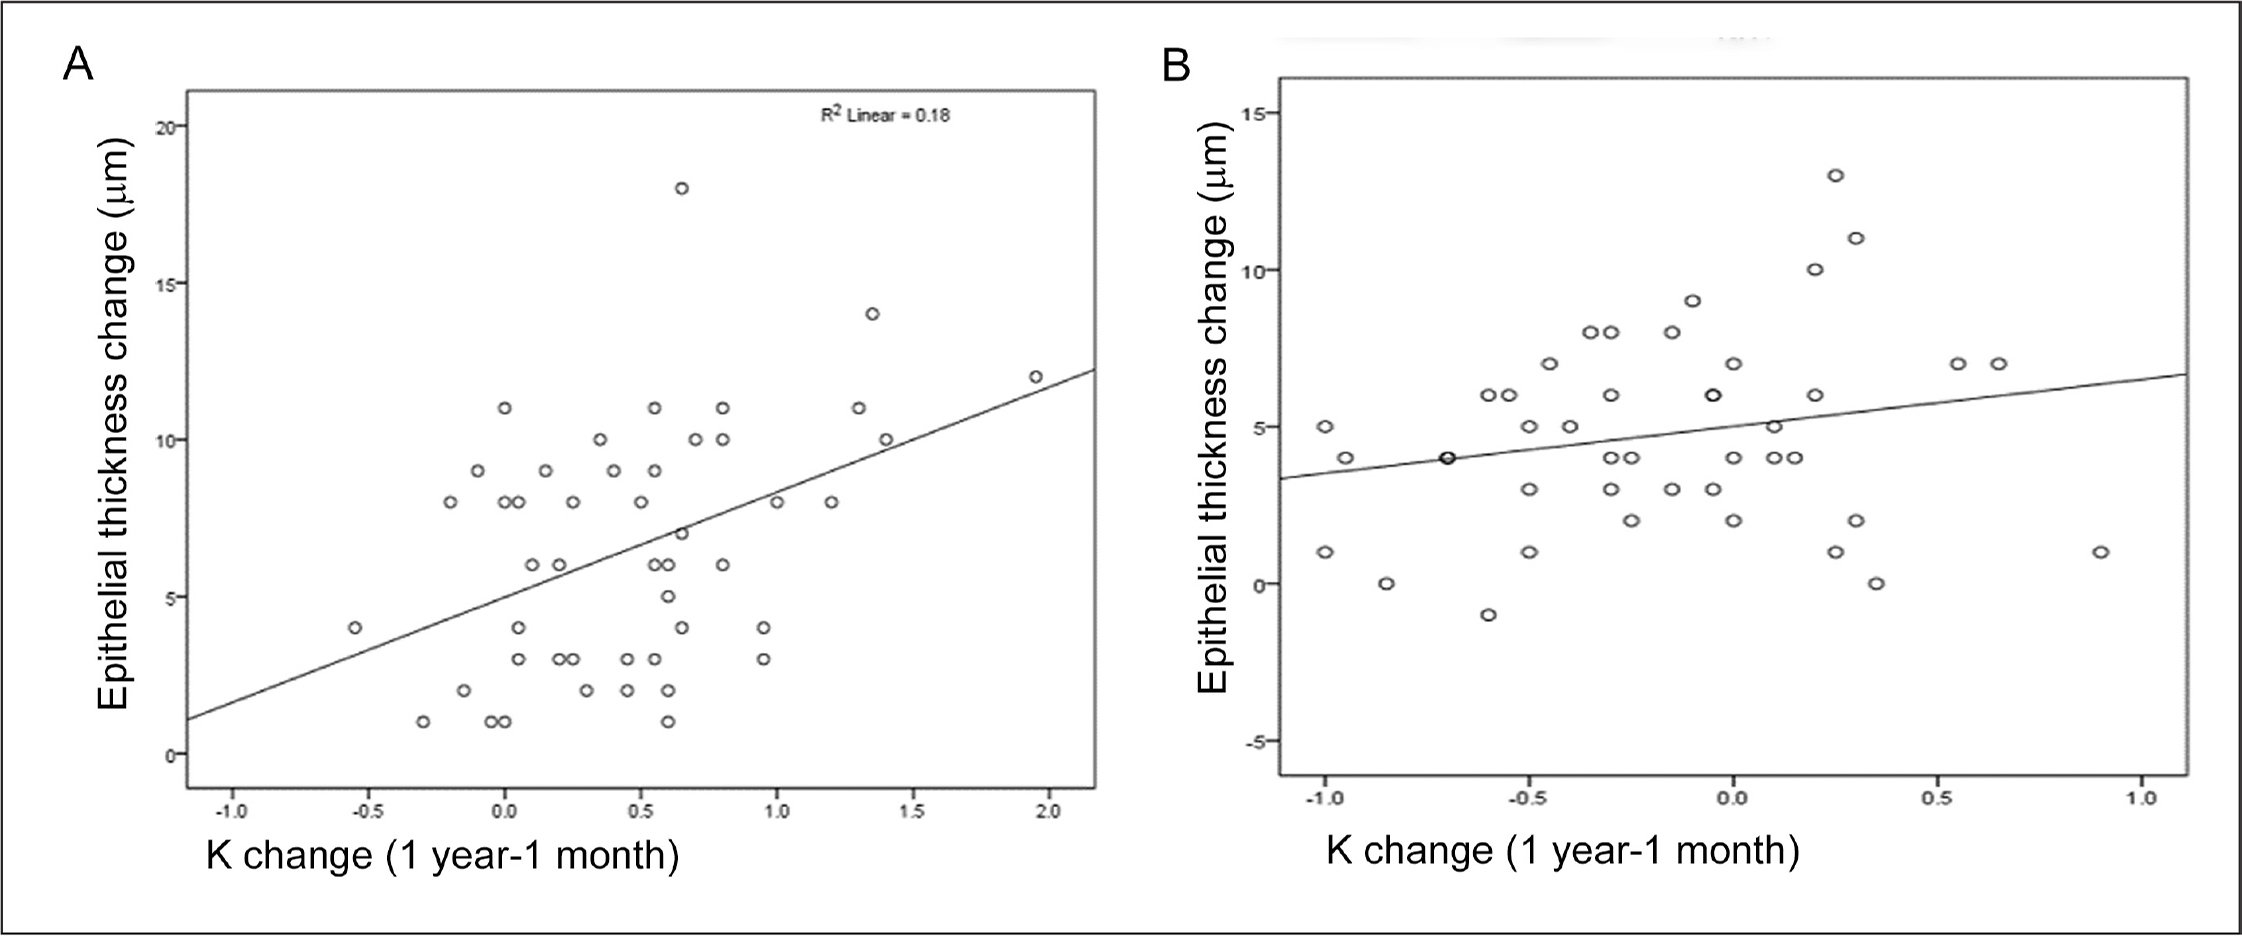 Association between change in epithelial thickness and keratometry (K) following transepithelial photorefractive keratectomy (TPRK) or TPRK with corneal cross-linking (TPRK-CXL). (A) In the TPRK group, change in epithelial thickness showed a linear association with the observed change in keratometry from 1 month to 1 year, (B) whereas a linear association was not observed with the change in K in the TPRK-CXL group.